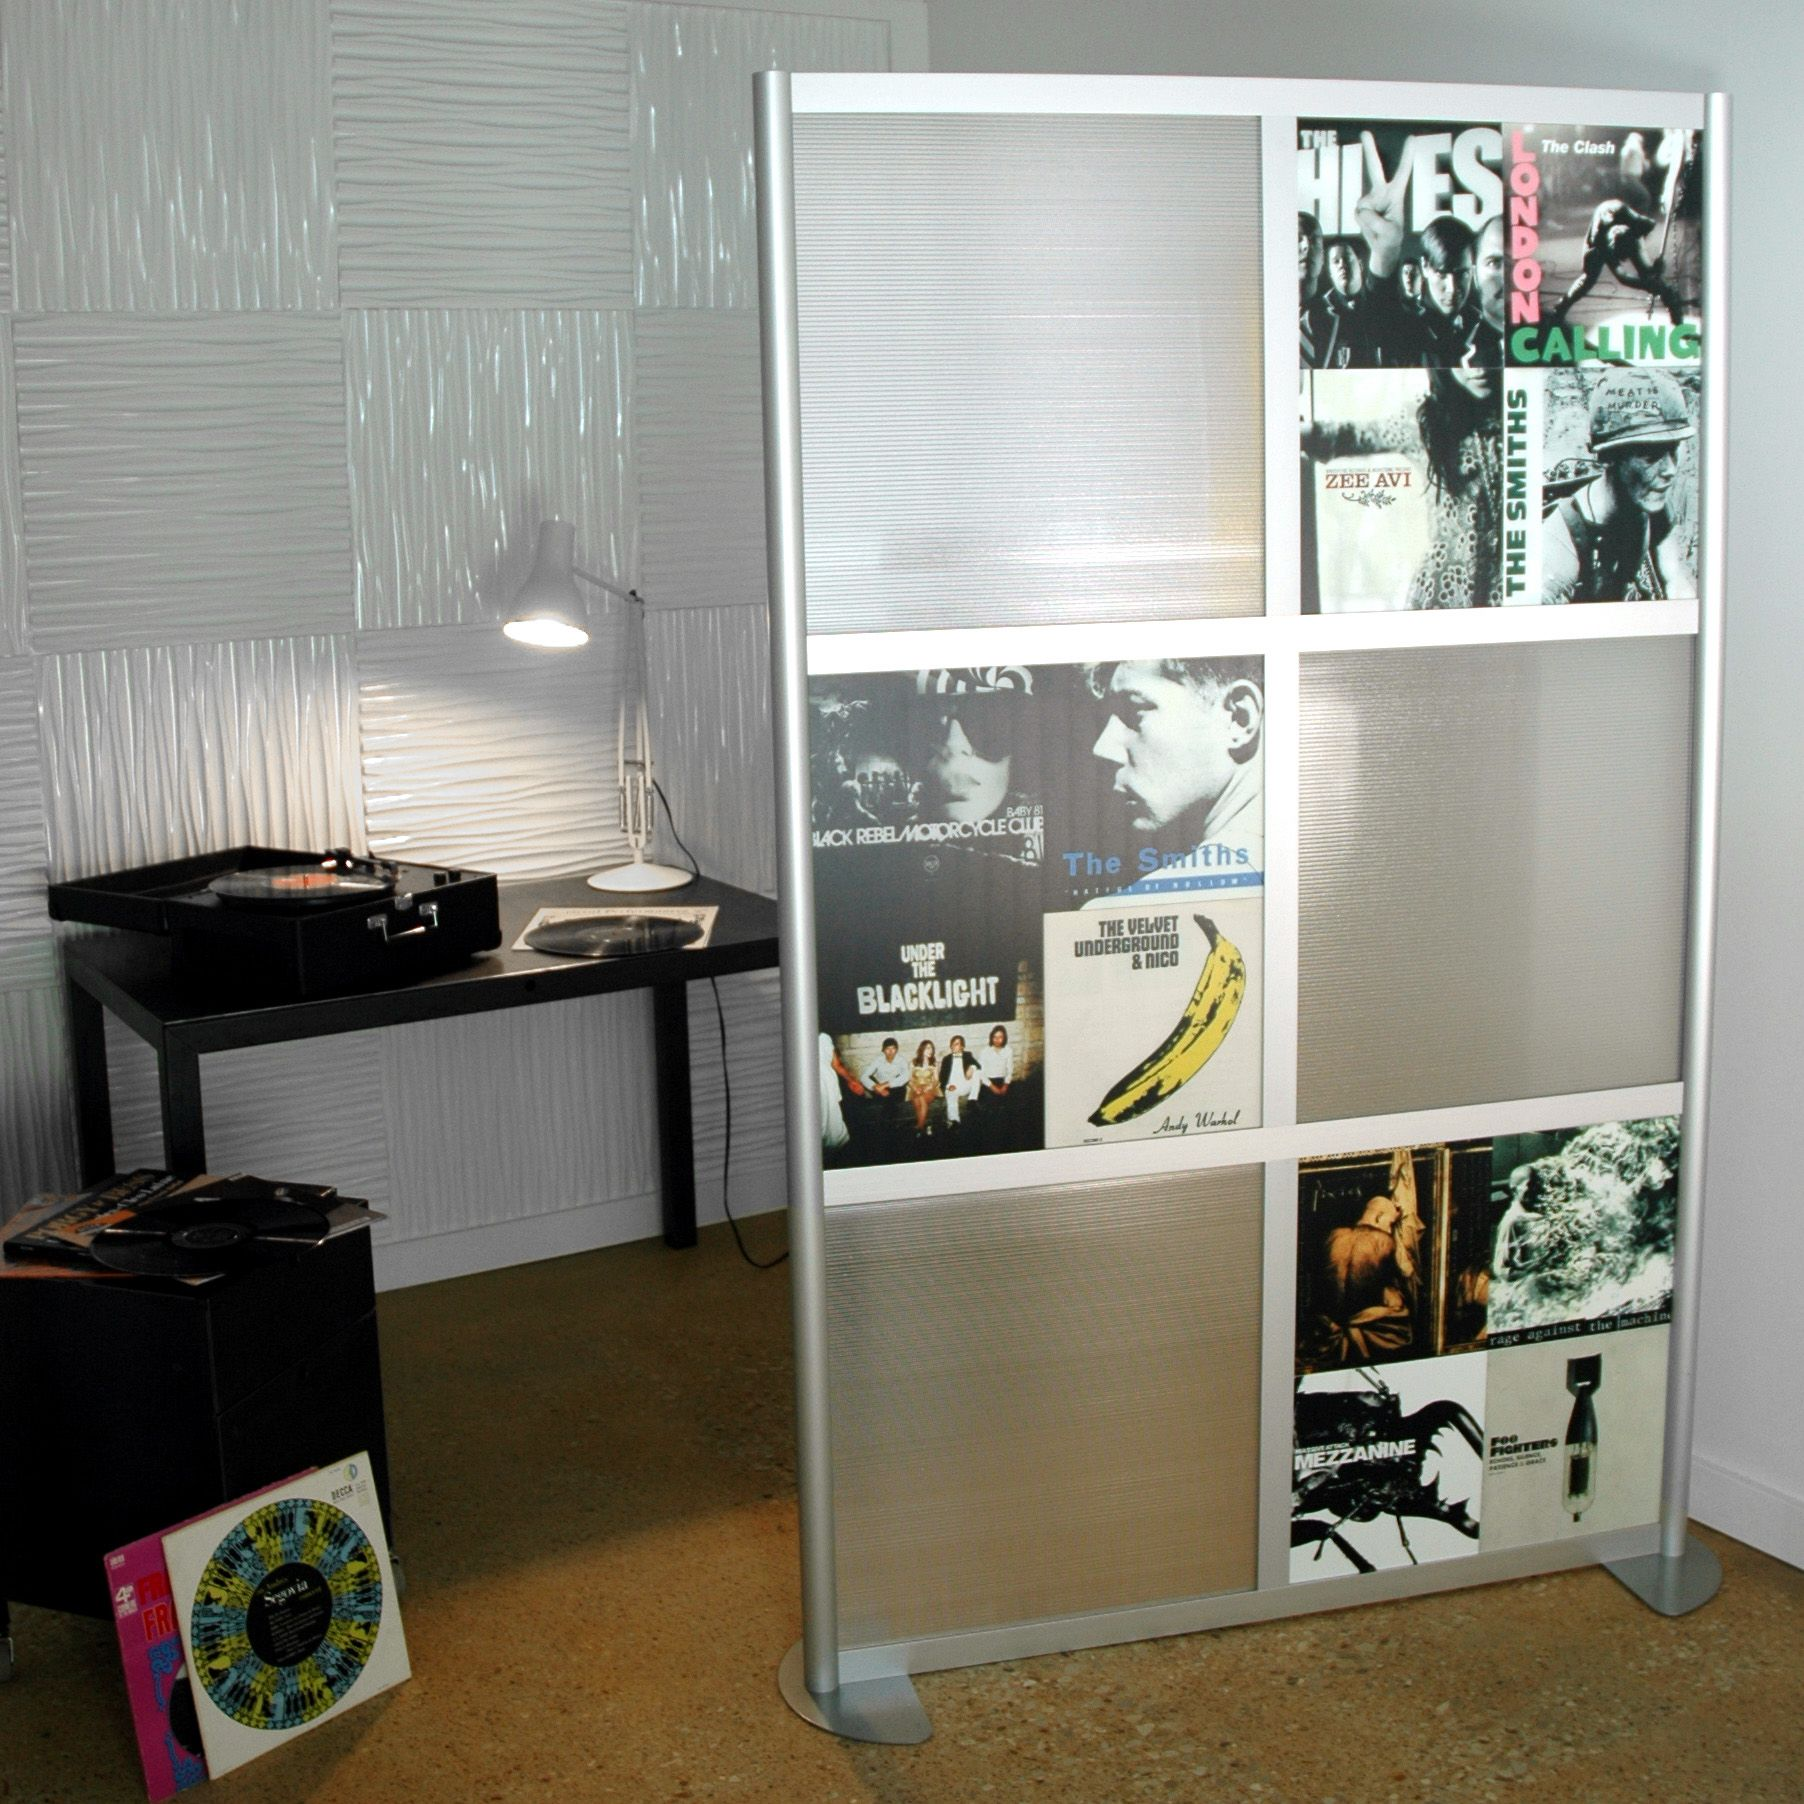 Album cover art room divider. This would work perfectly